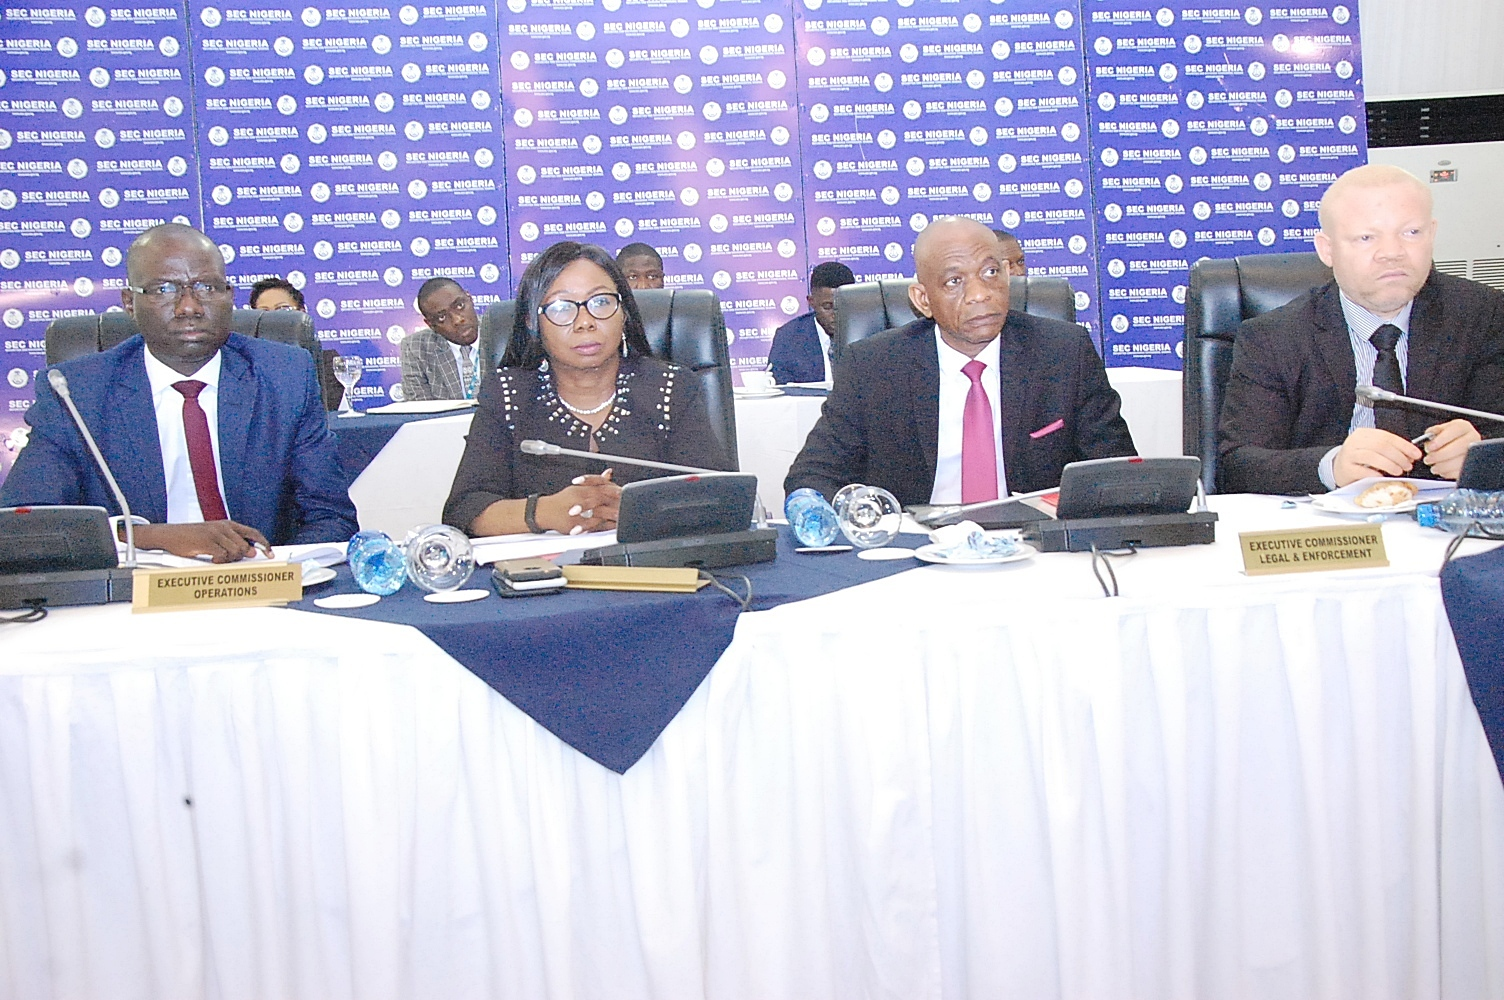 LEFT to RIGHT: Ag. Executive Commissioner Operations, Securities and Exchange Commission (SEC), Mr. Isyaku Tilde, Ag. Director General SEC, Ms. Mary Uduk, Ag. Executive Commissioner Corporate Services SEC, Mr. Henry Rowlands and Ag. Executive Commissioner Legal and Enforcement SEC, Mr. Reginald Karawusa during the Second Capital Market Committee (CMC) in 2018 held in Lagos, Thursday.